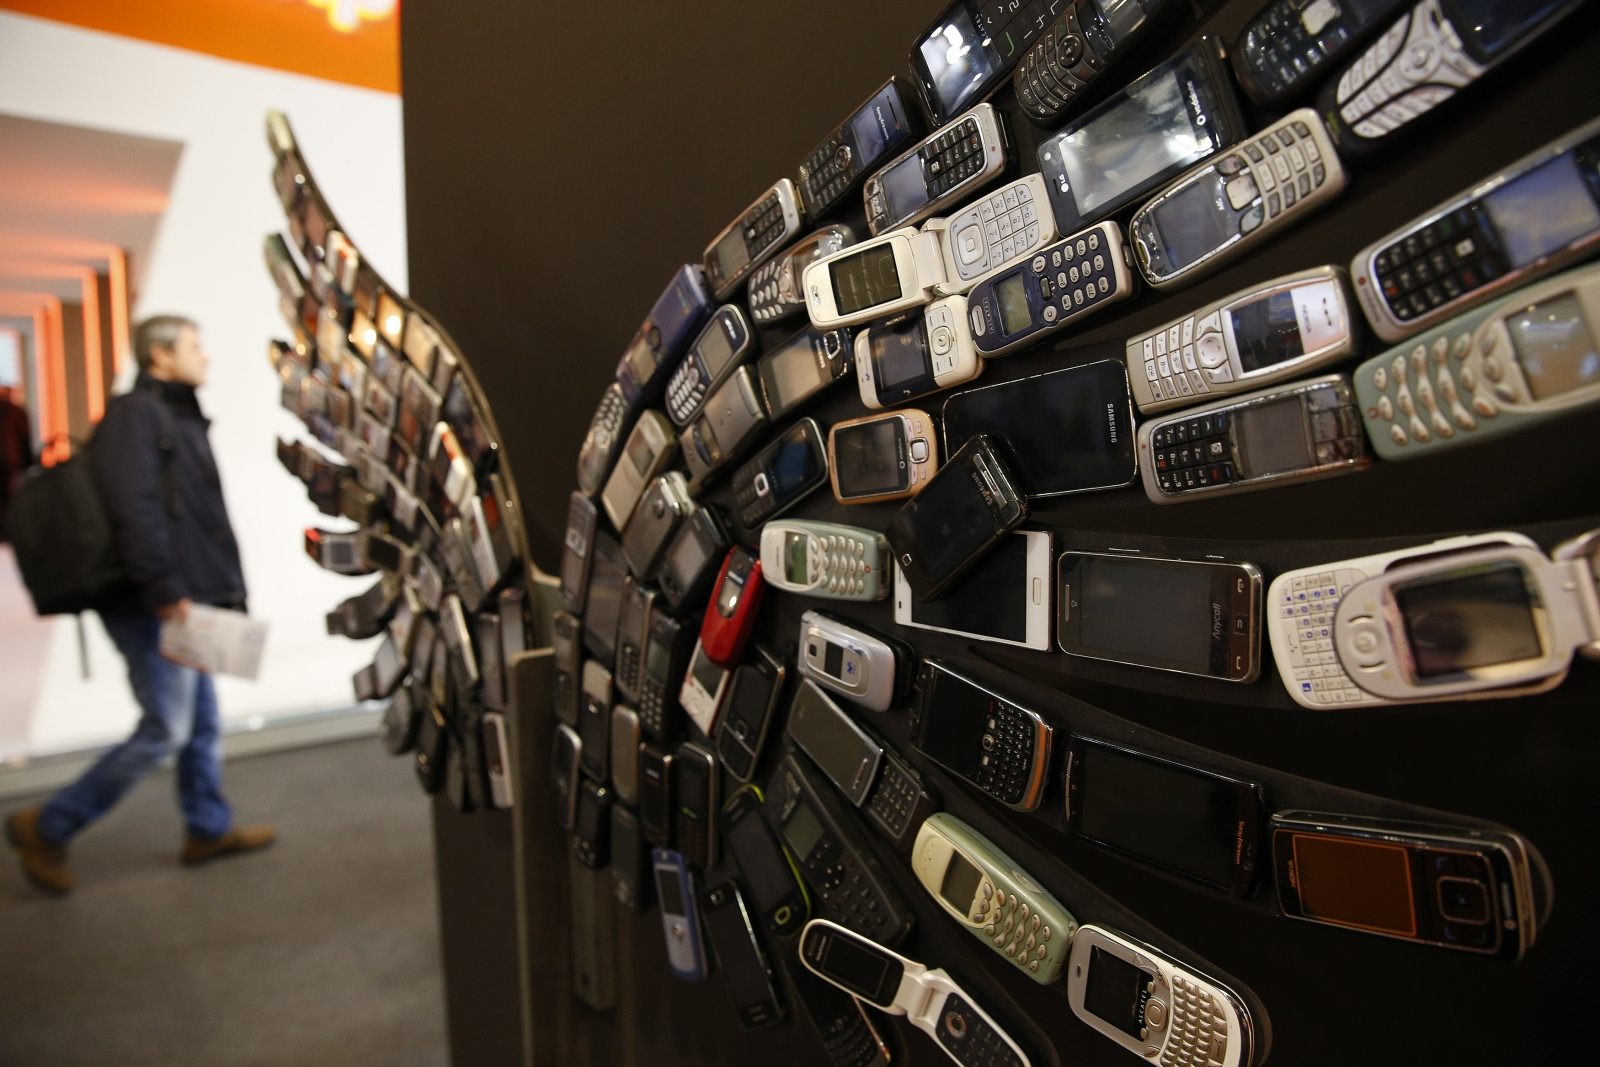 Artwork of old mobile phones at MWC2017